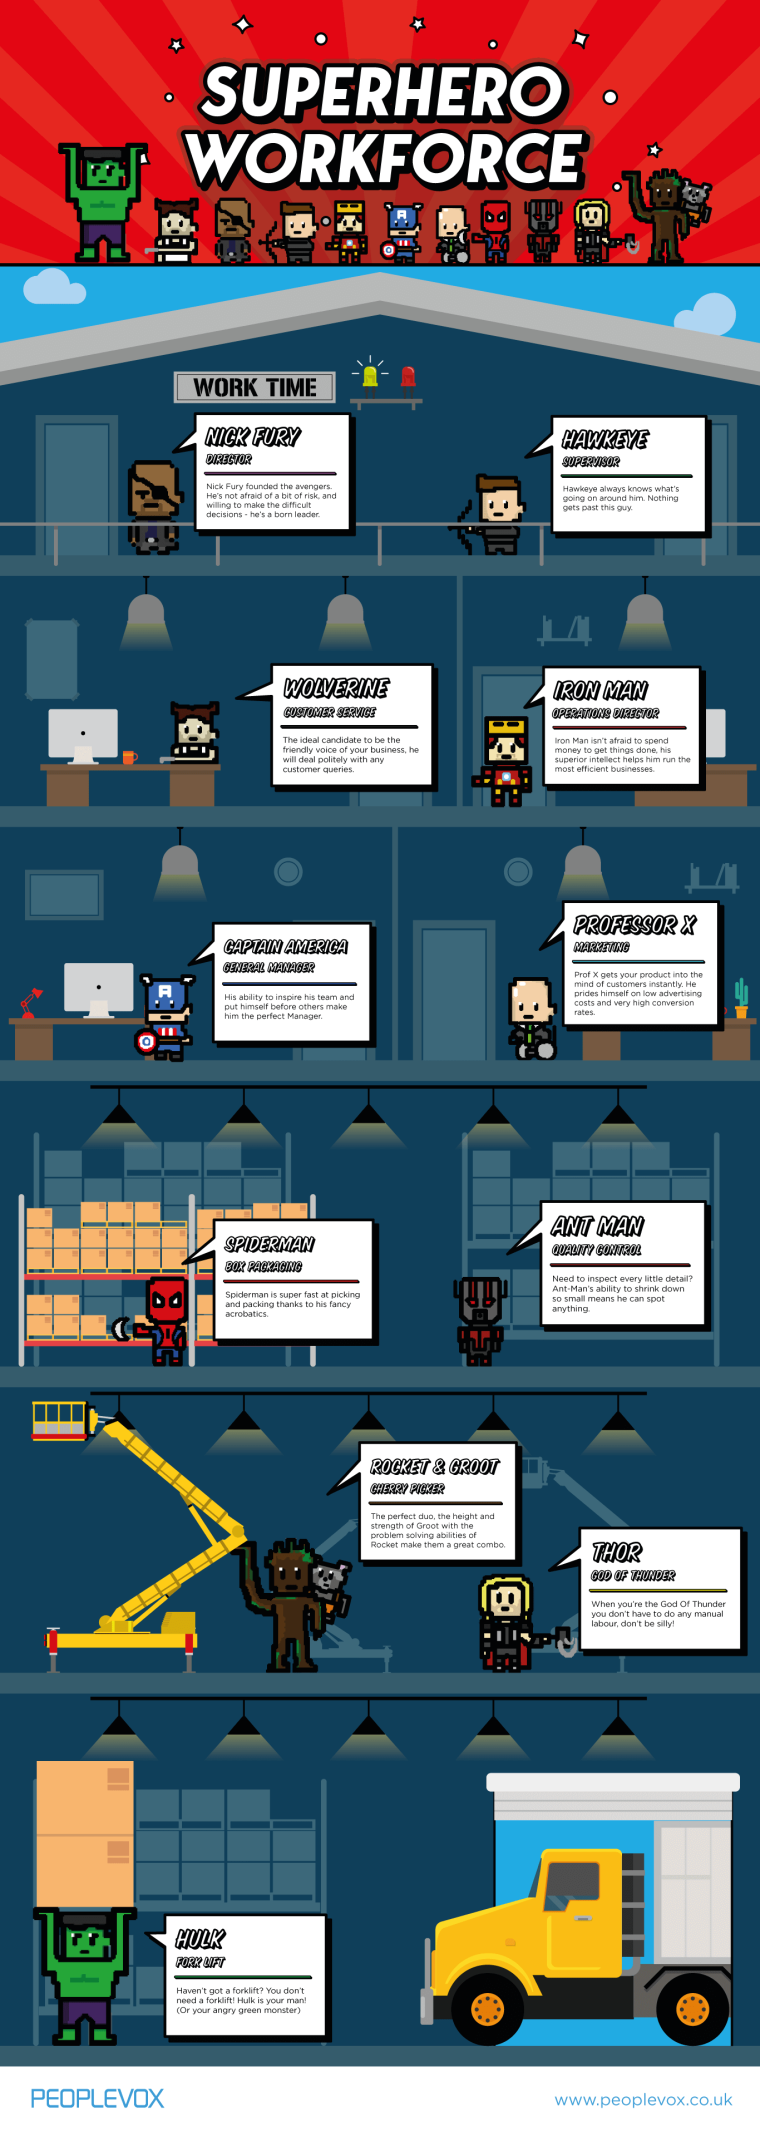 Superhero workforce infographic by People Vox